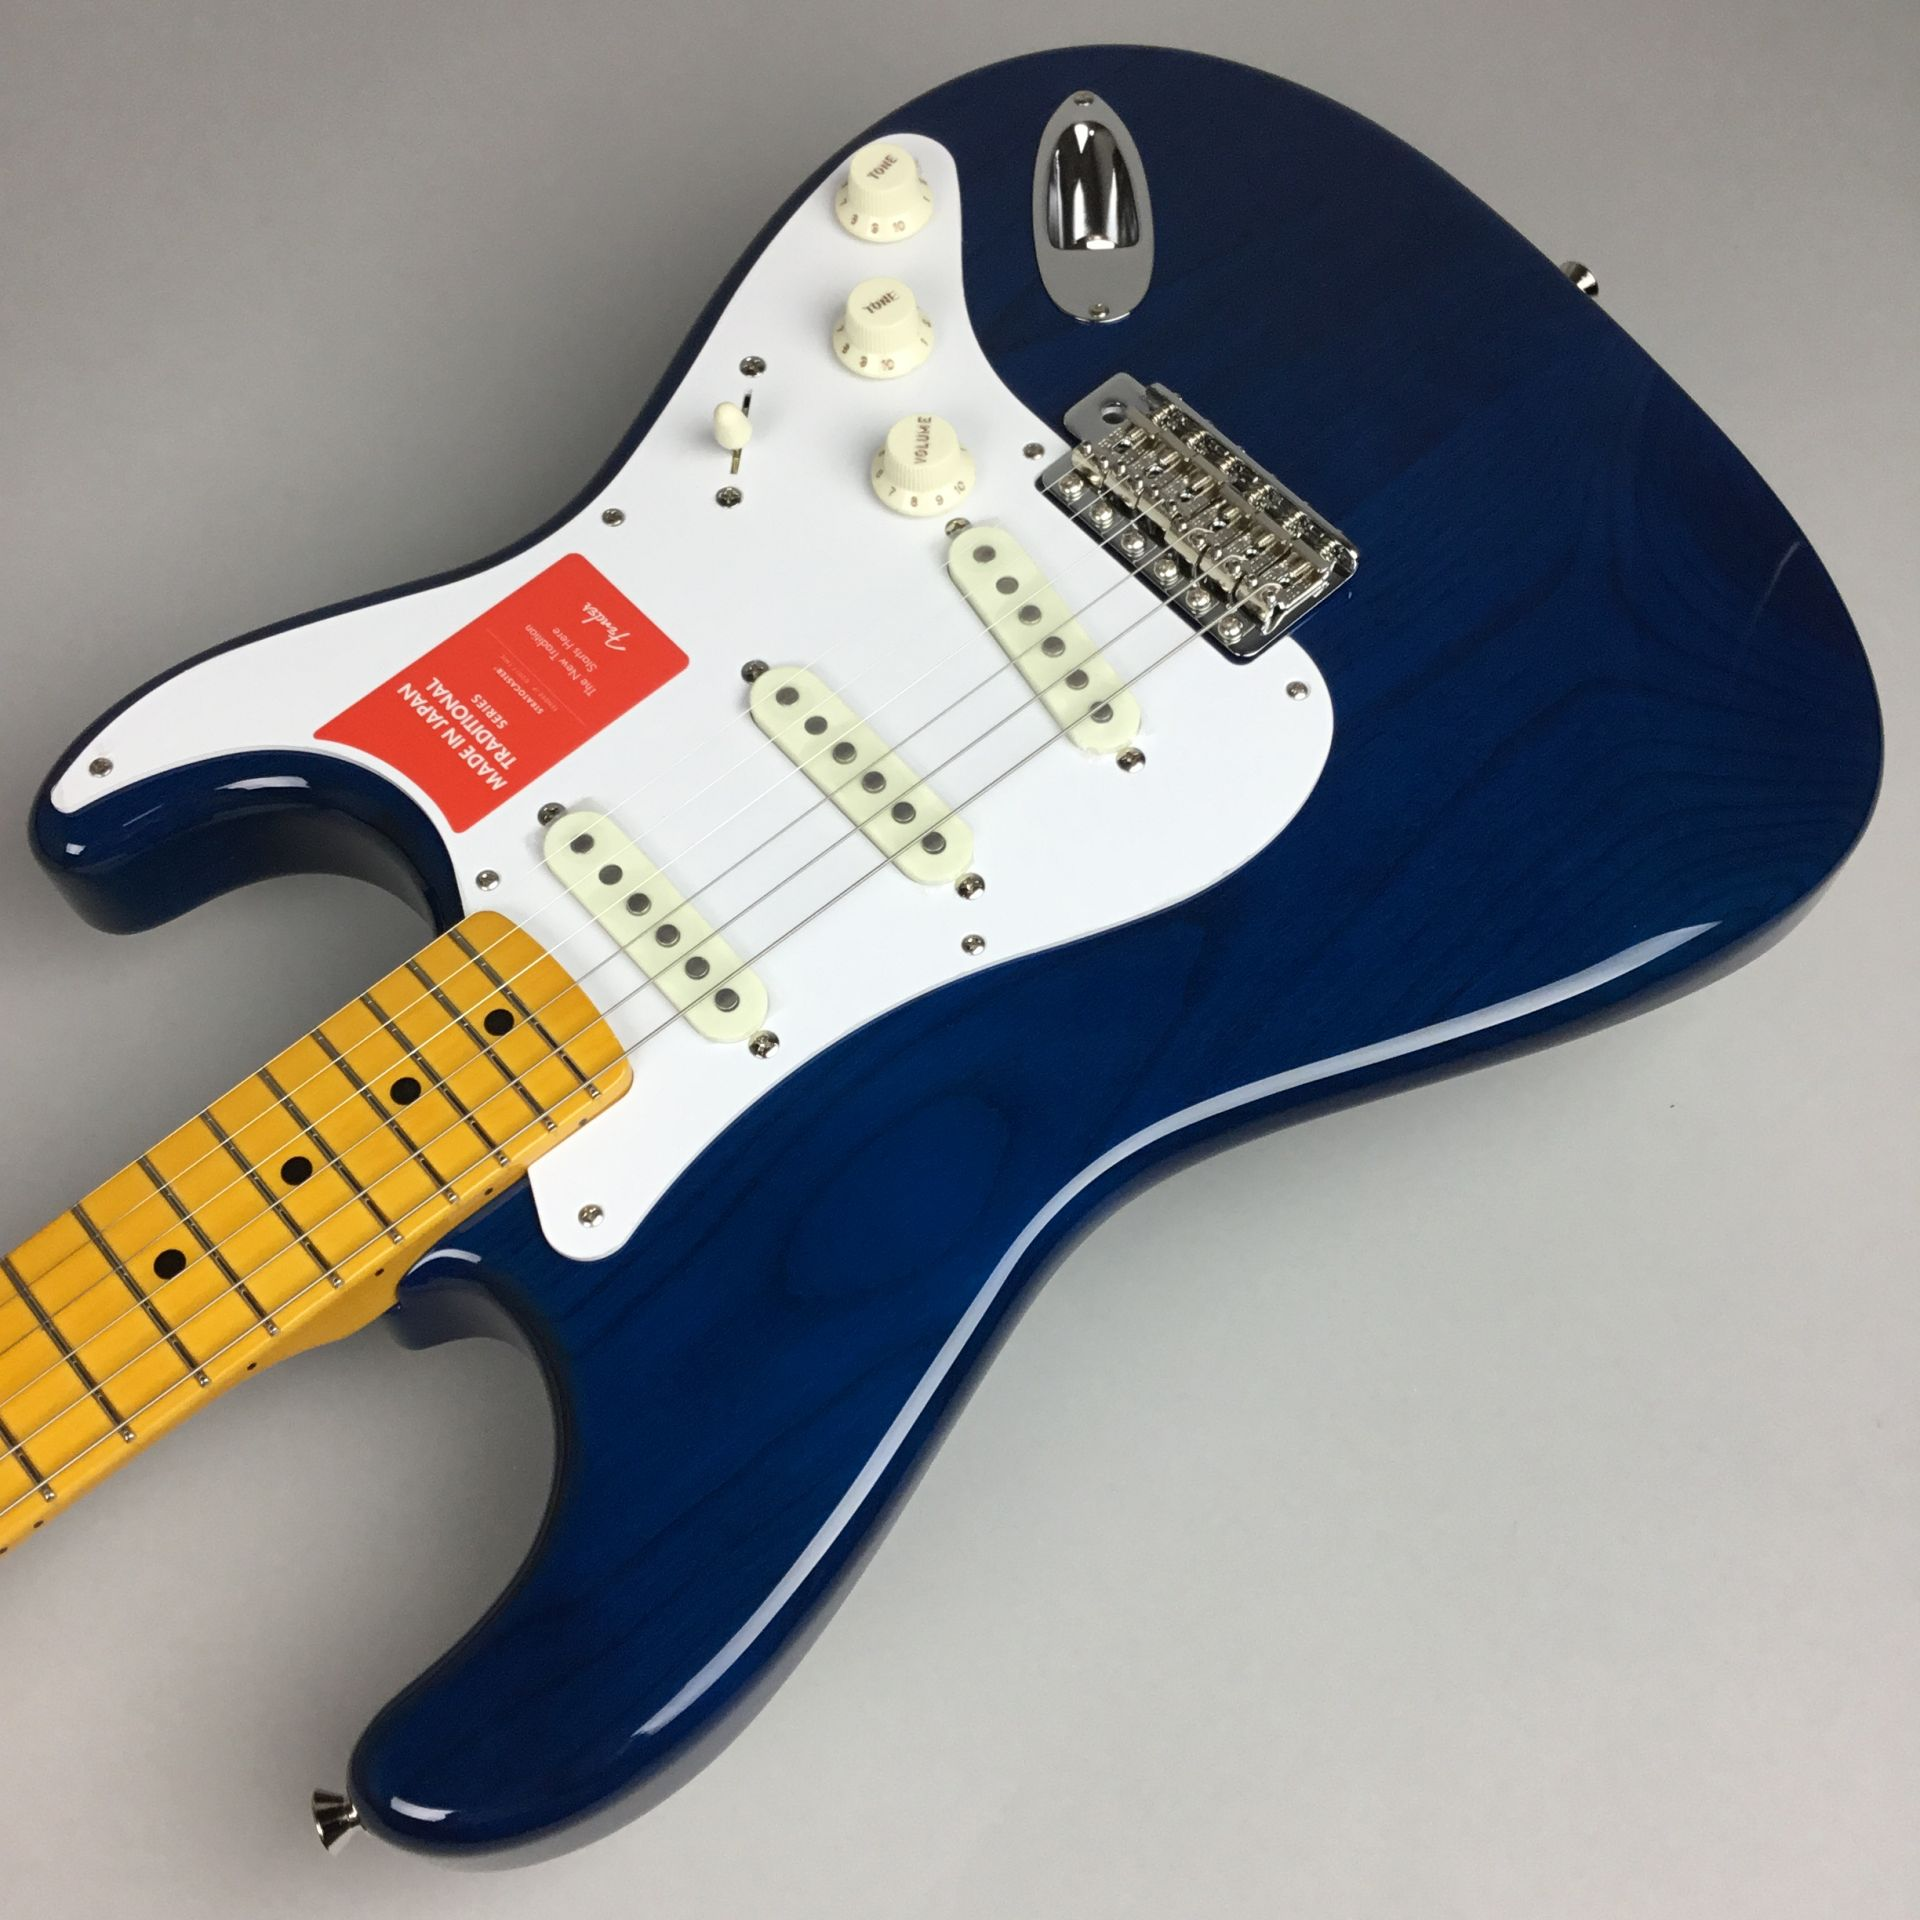 MADE IN JAPAN TRADITIONAL 58 STRATOCASTER®のケース・その他画像